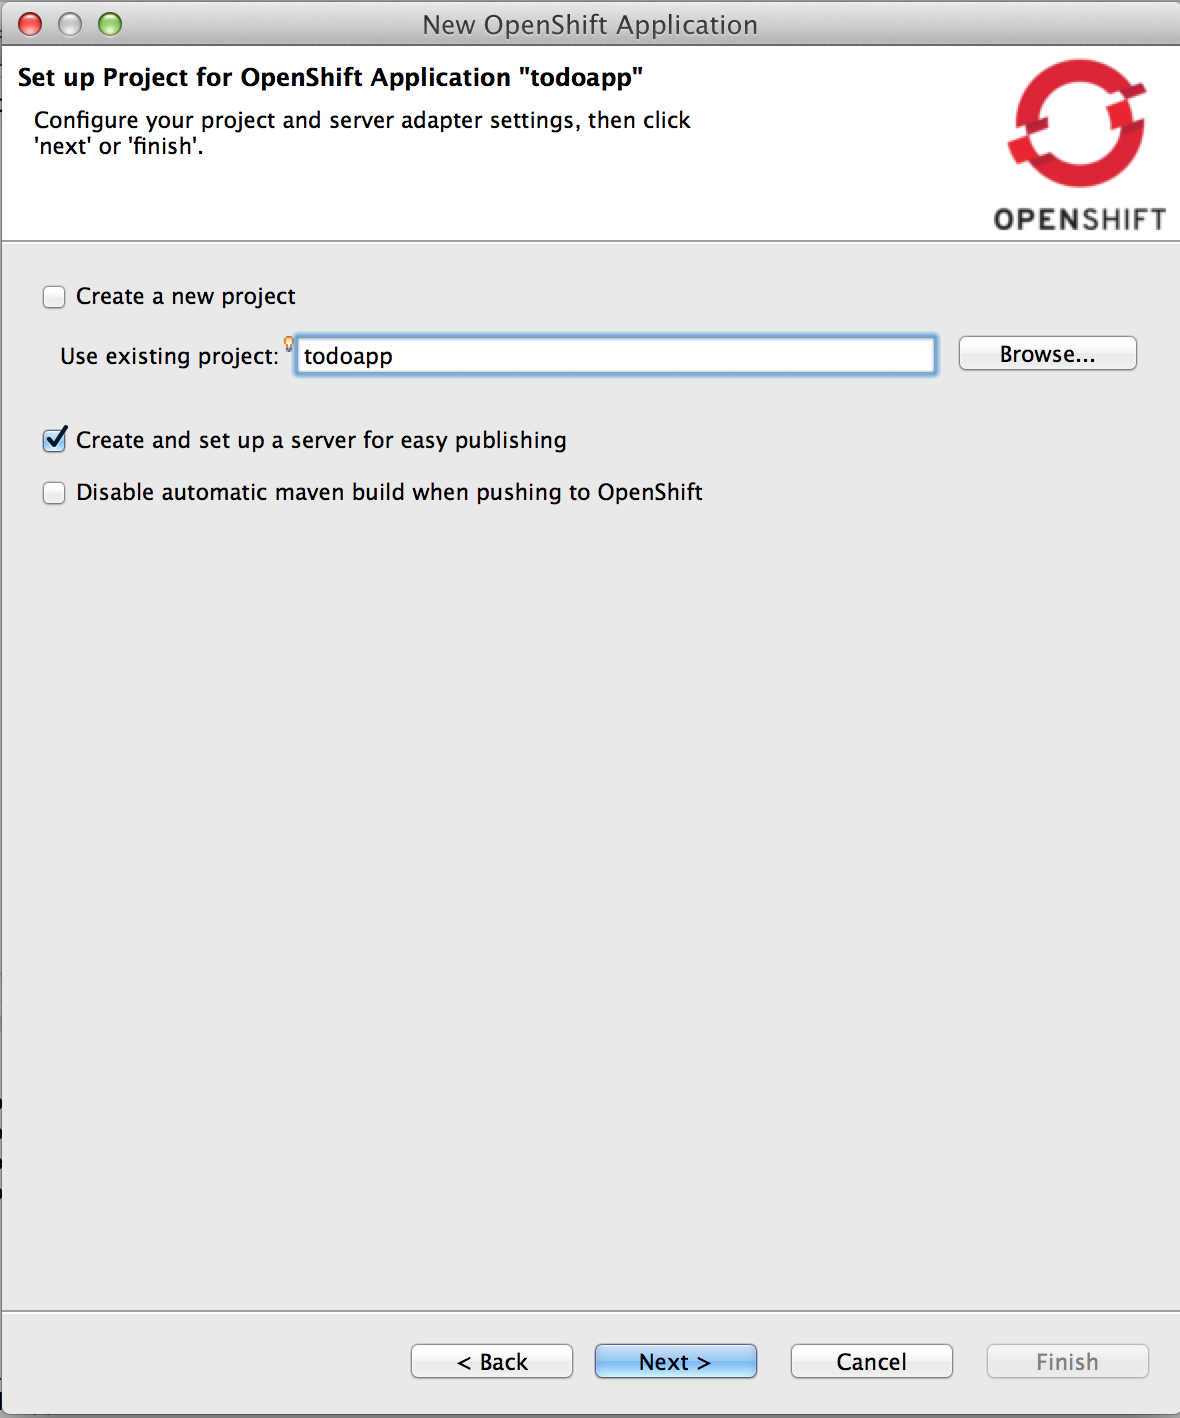 Setup your OpenShift Todoapp